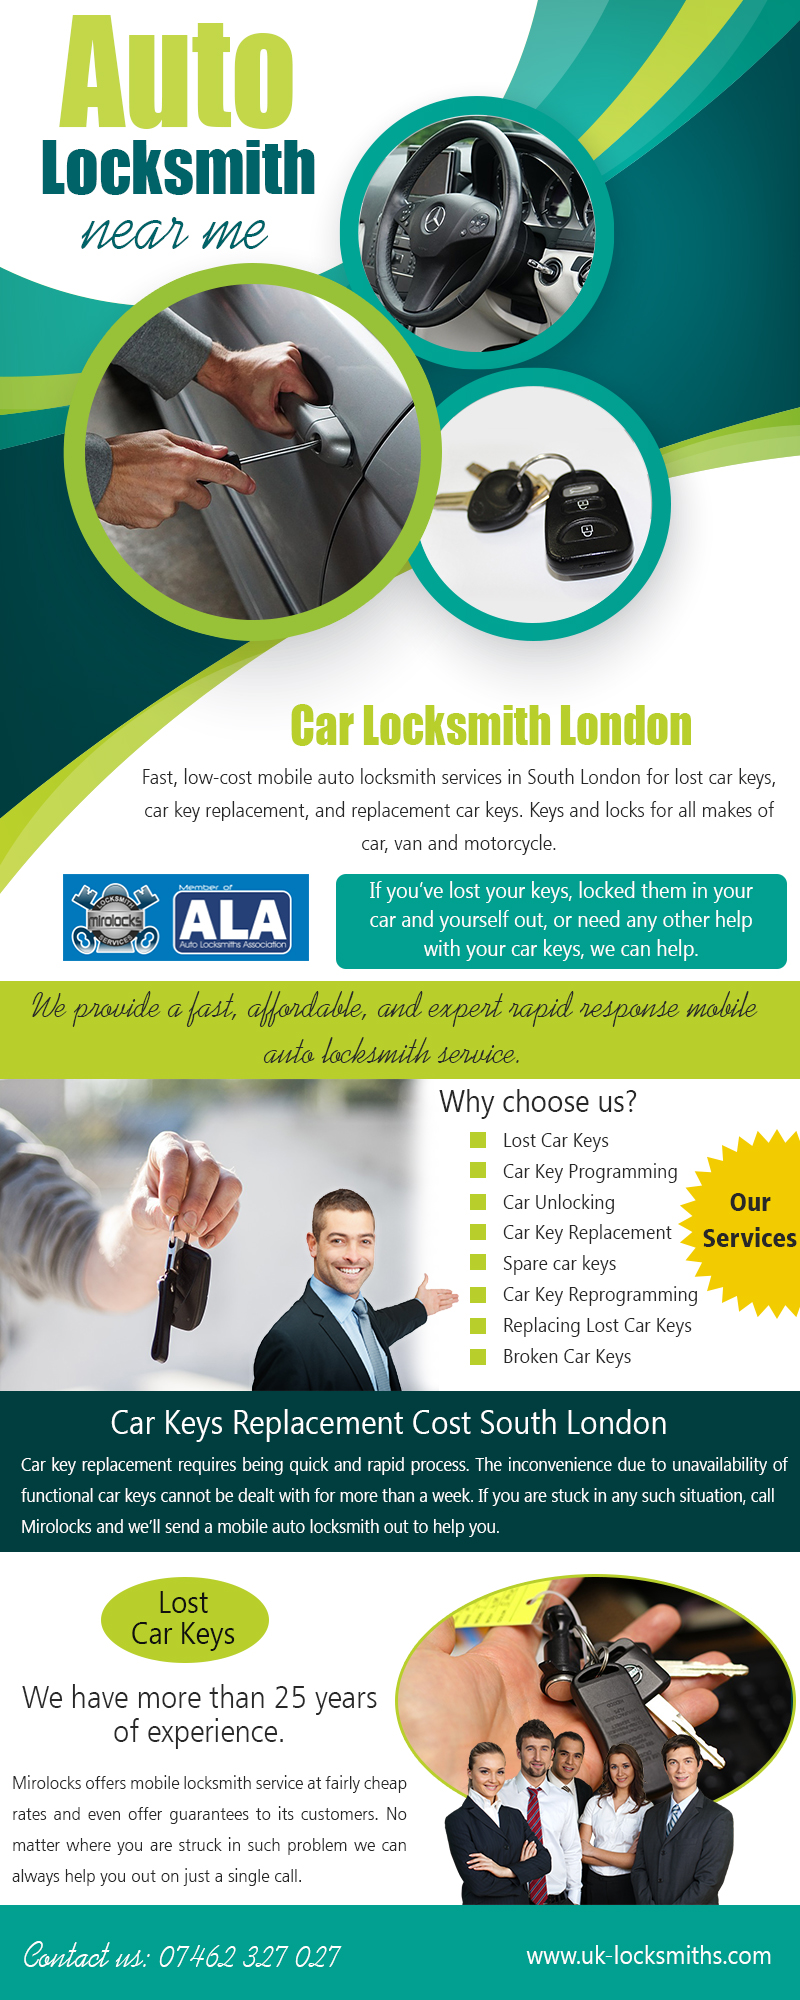 Auto Locksmith UK | Call – 07462 327 027 | uk-locksmiths.com